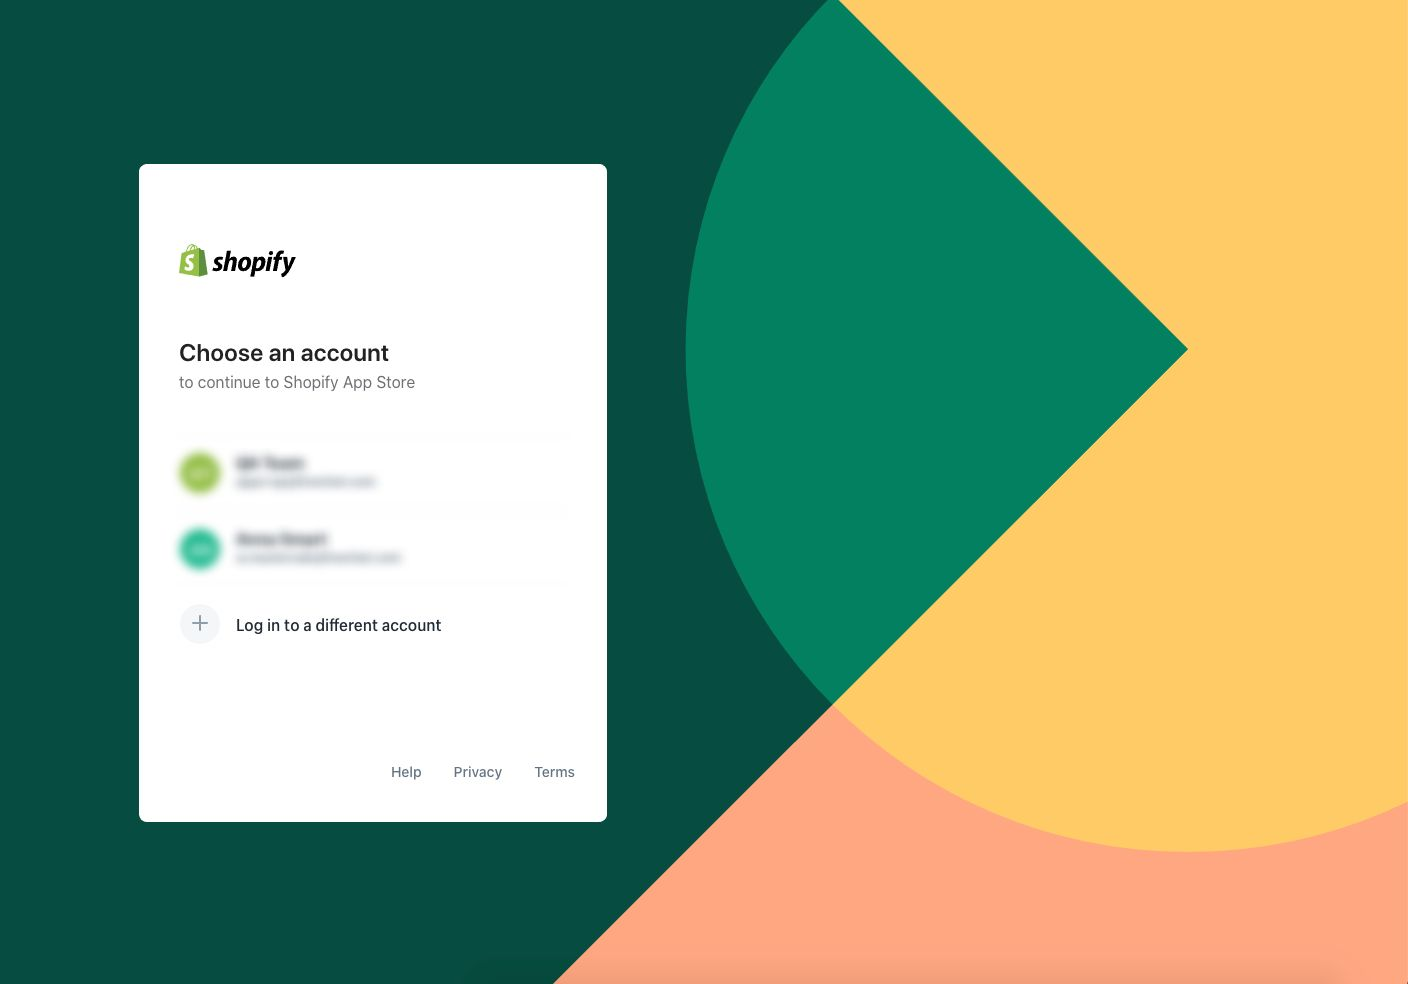 Selecting a Shopify account to continue the process in the Shopify App Store.